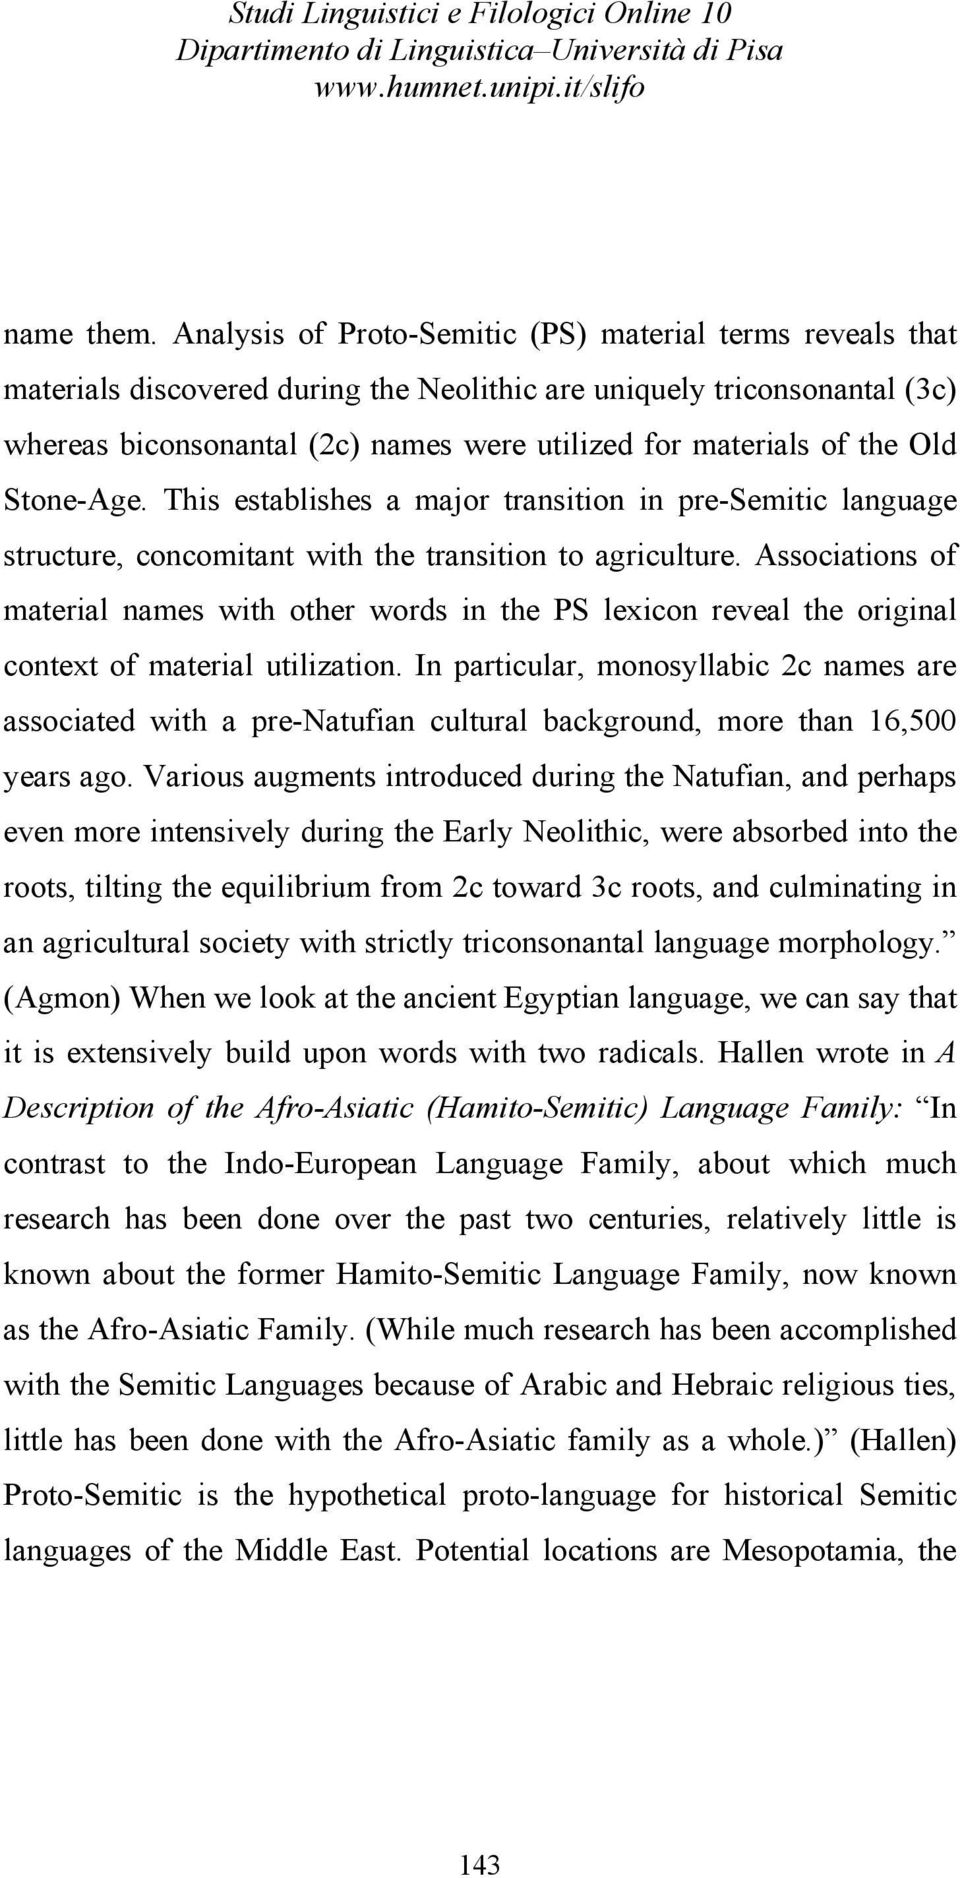 the Old Stone-Age. This establishes a major transition in pre-semitic language structure, concomitant with the transition to agriculture.